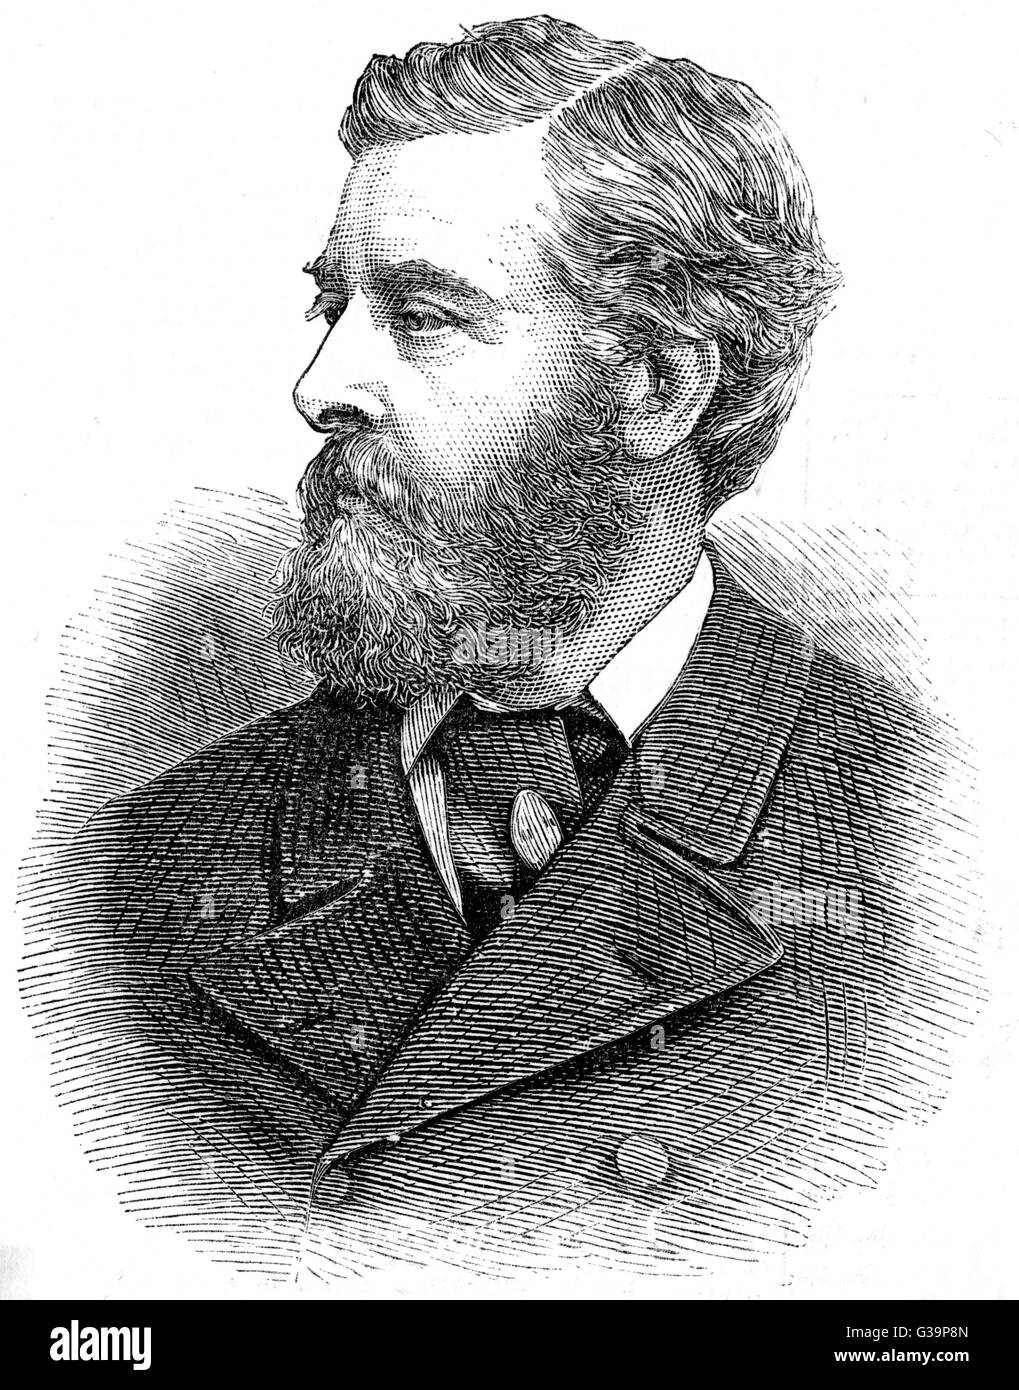 WILLIAM BLANCHARD JERROLD  Writer of plays and novels       Date: 1826 - 1884 - Stock Image